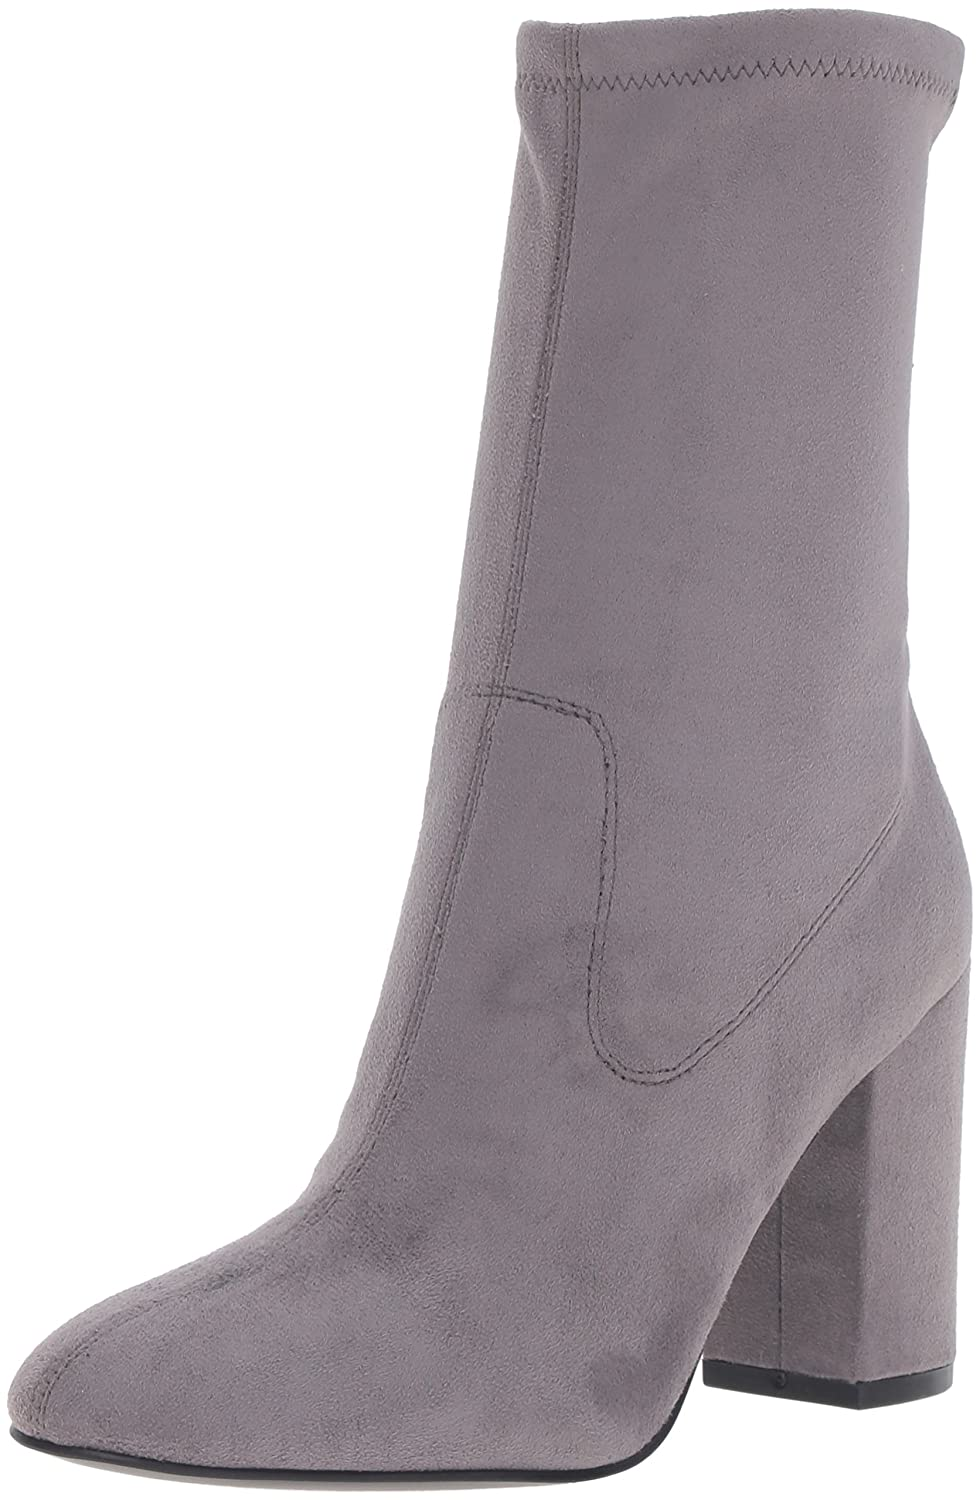 Grey Guess Women'S Amary